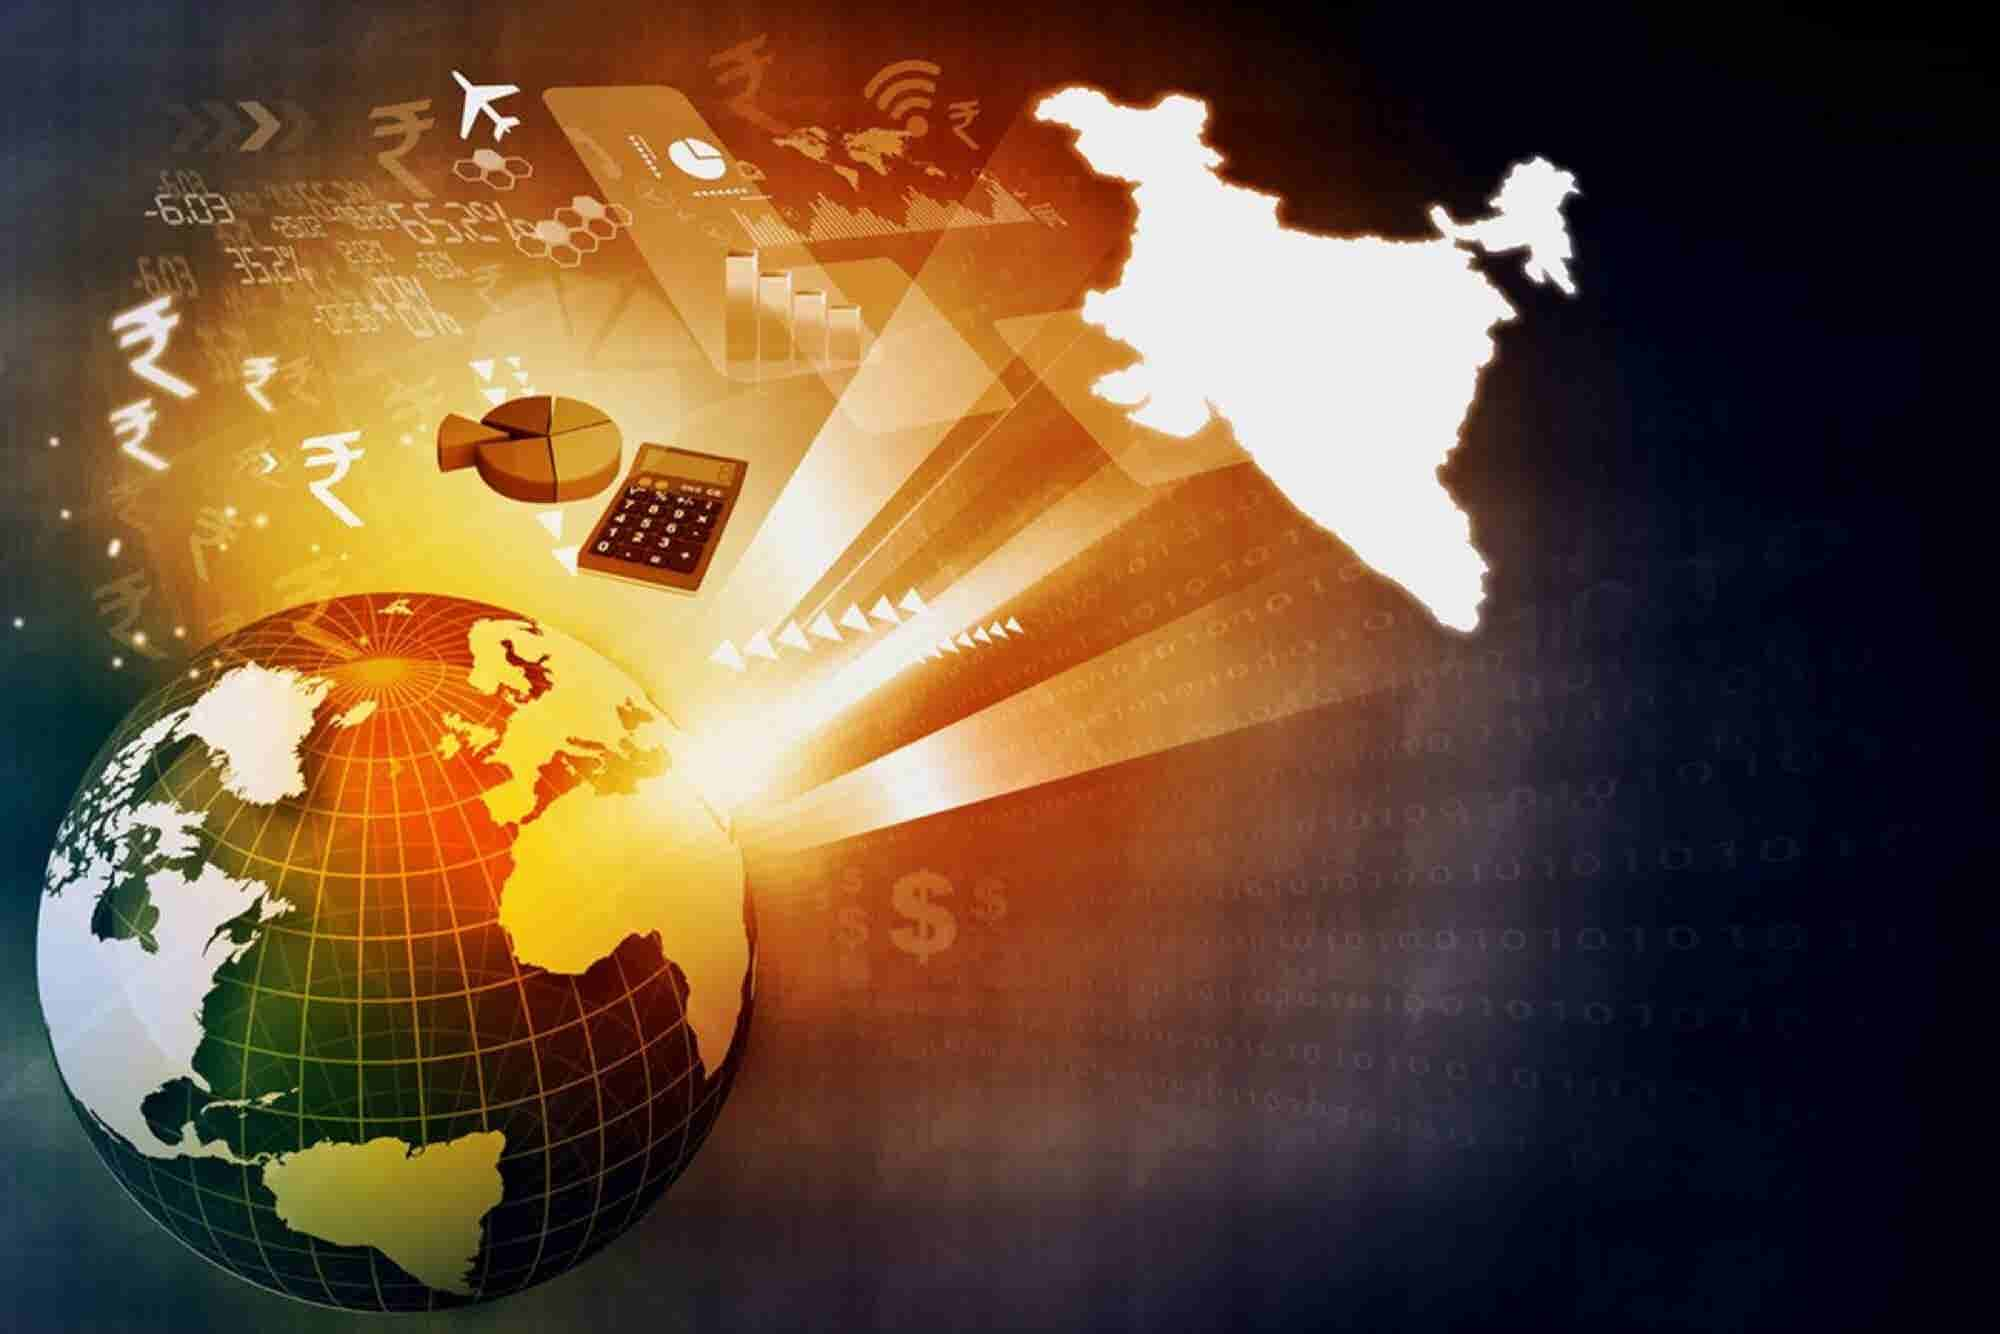 #5 Key Areas India Needs to Focus On to Climb the Ranks on the Ease of Doing Business List